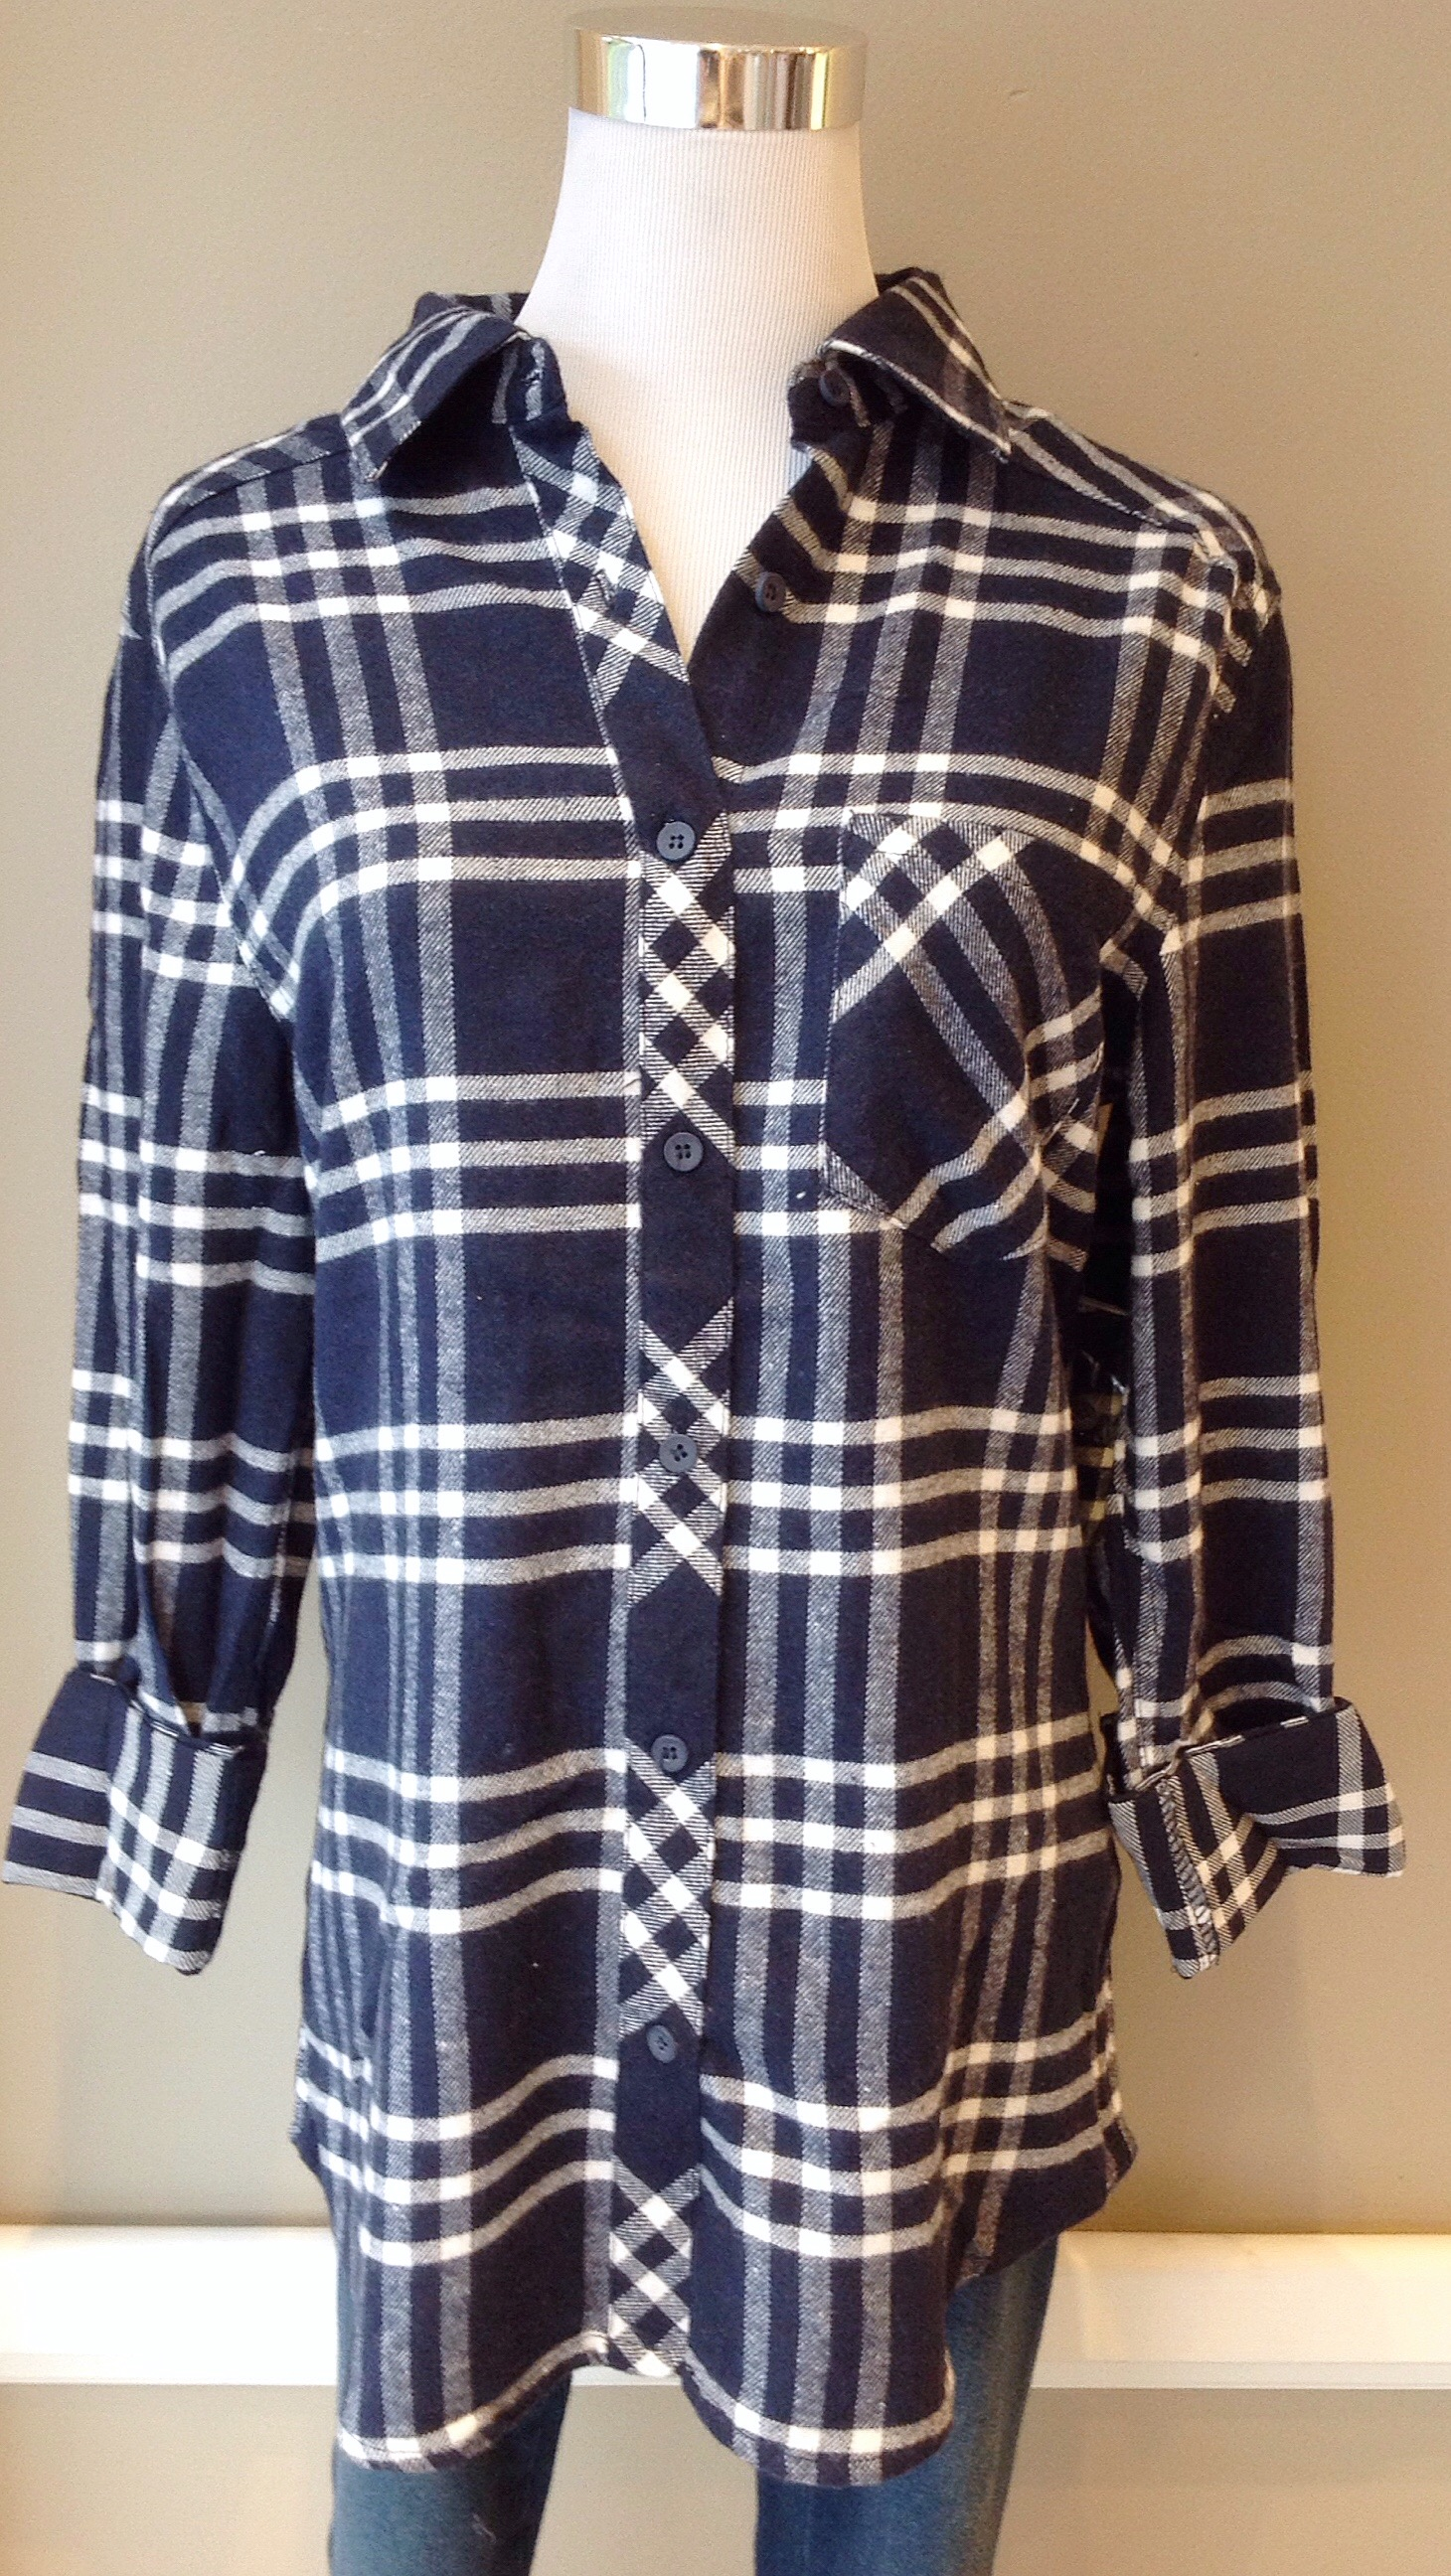 White and navy cotton flannel shirt with elbow patches, $34